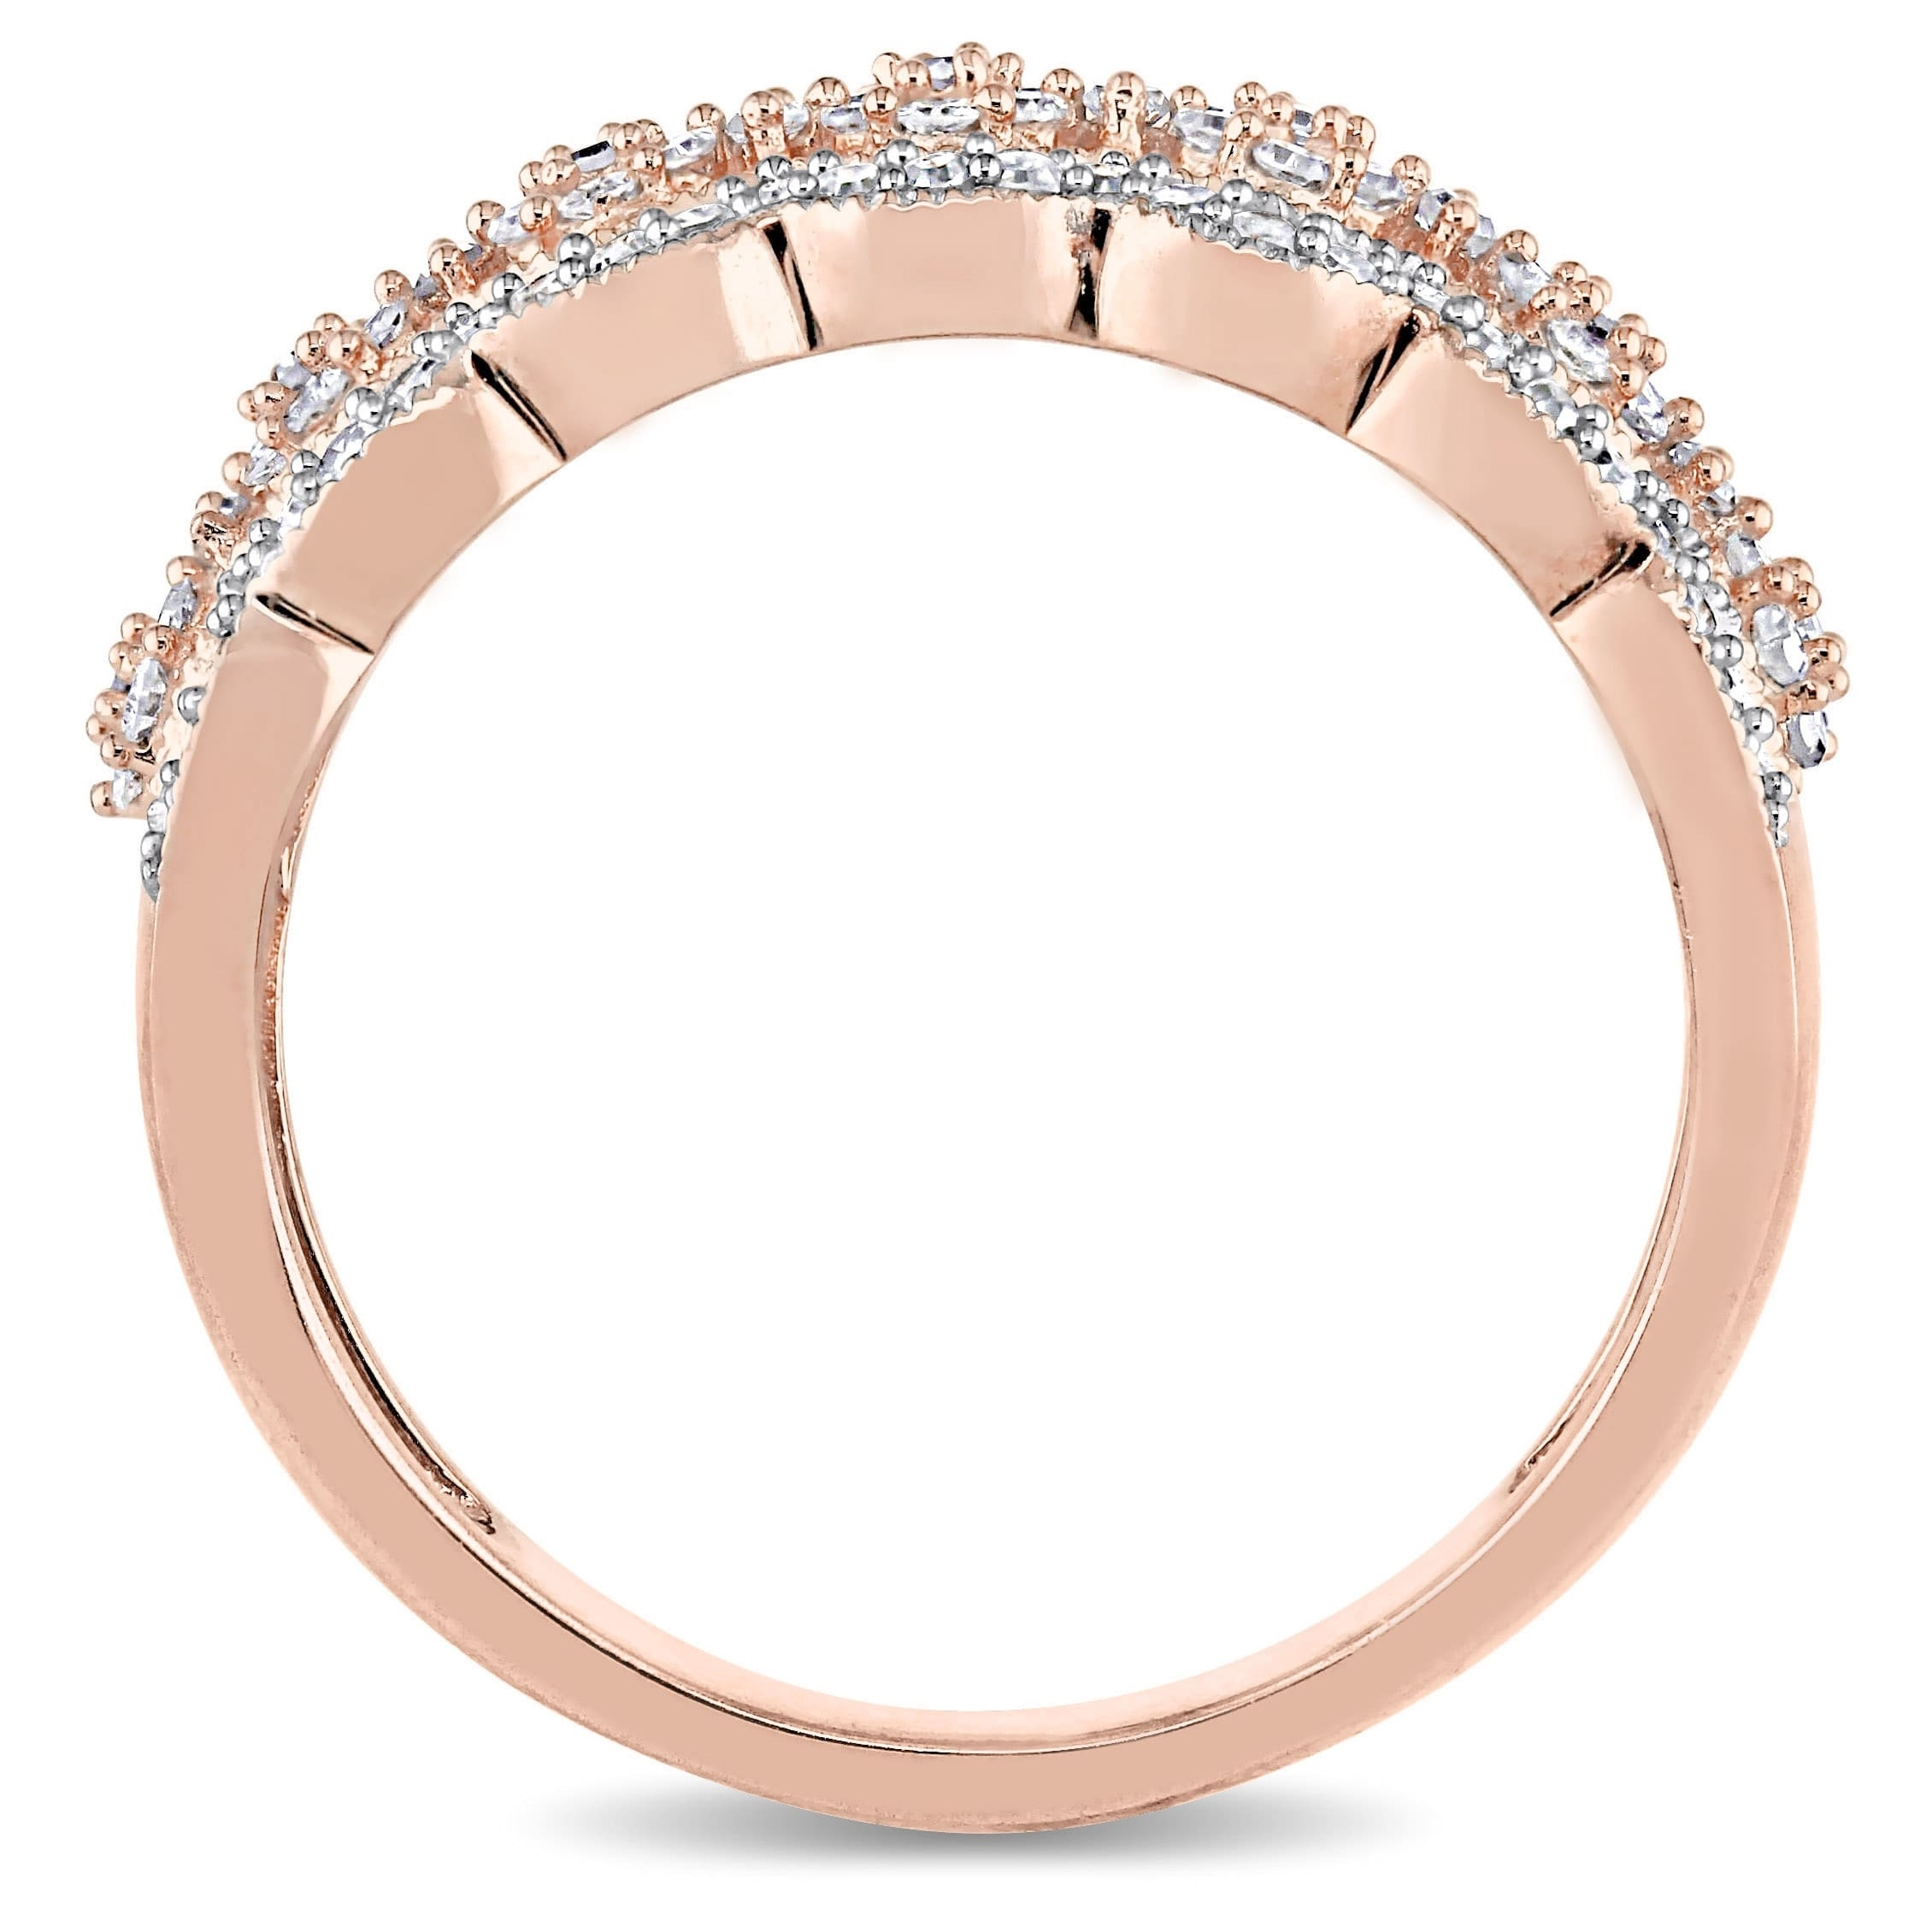 Shop Miadora Signature Collection 10K Rose Gold 1/2Ct Tdw Diamond Pertaining To Most Up To Date Diamond Accent Milgrain Anniversary Bands In 10K Rose Gold (View 13 of 15)